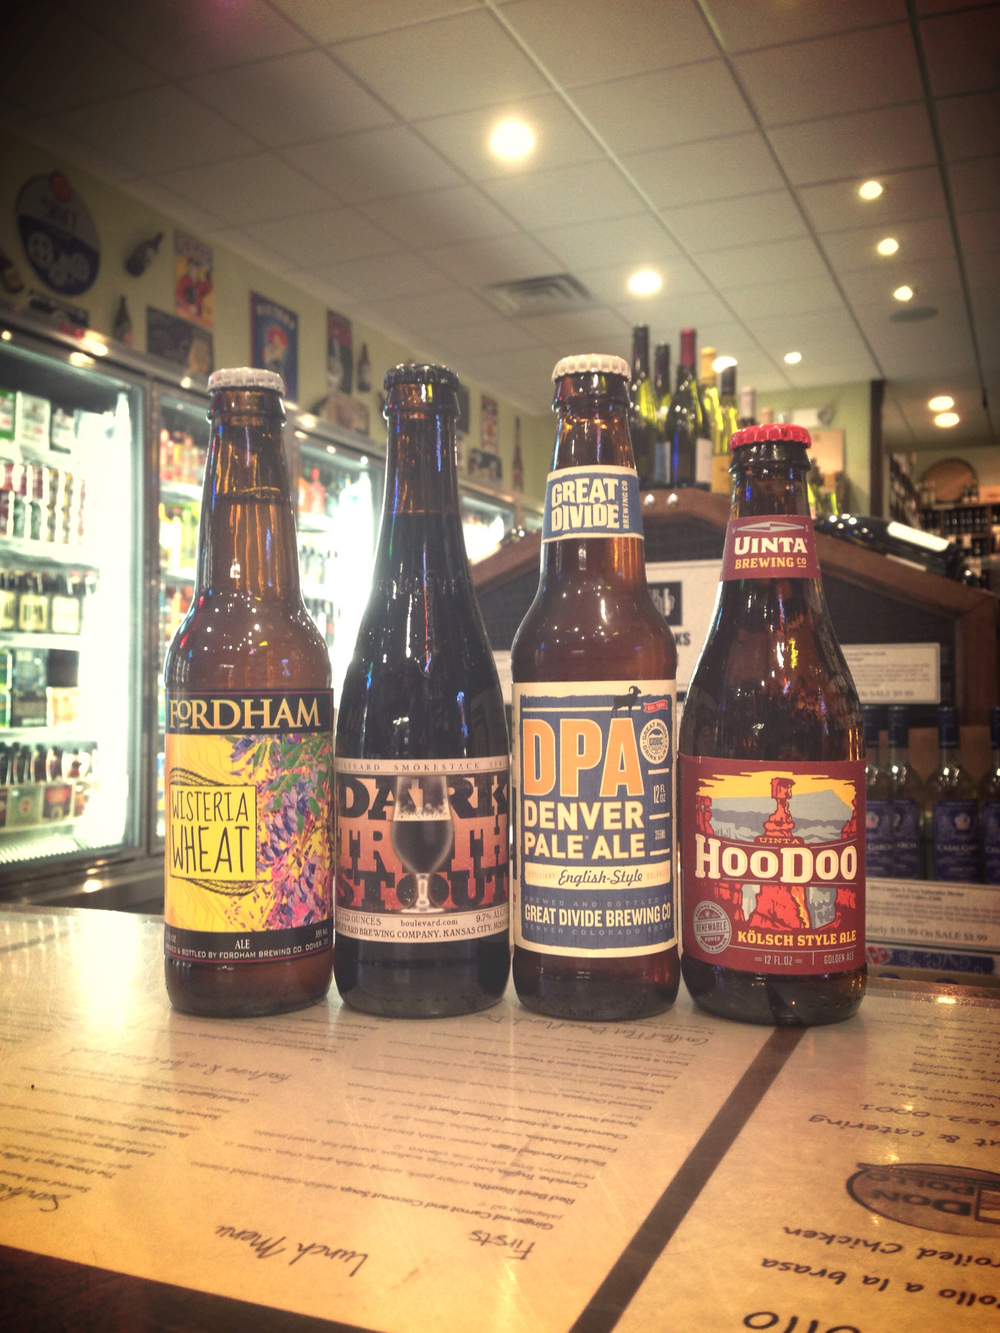 Fordham Wisteria Wheat, Boulevard Dark Truth Stout, Great Divide Denver Pale Ale, Uinta Hoodoo Kolsch